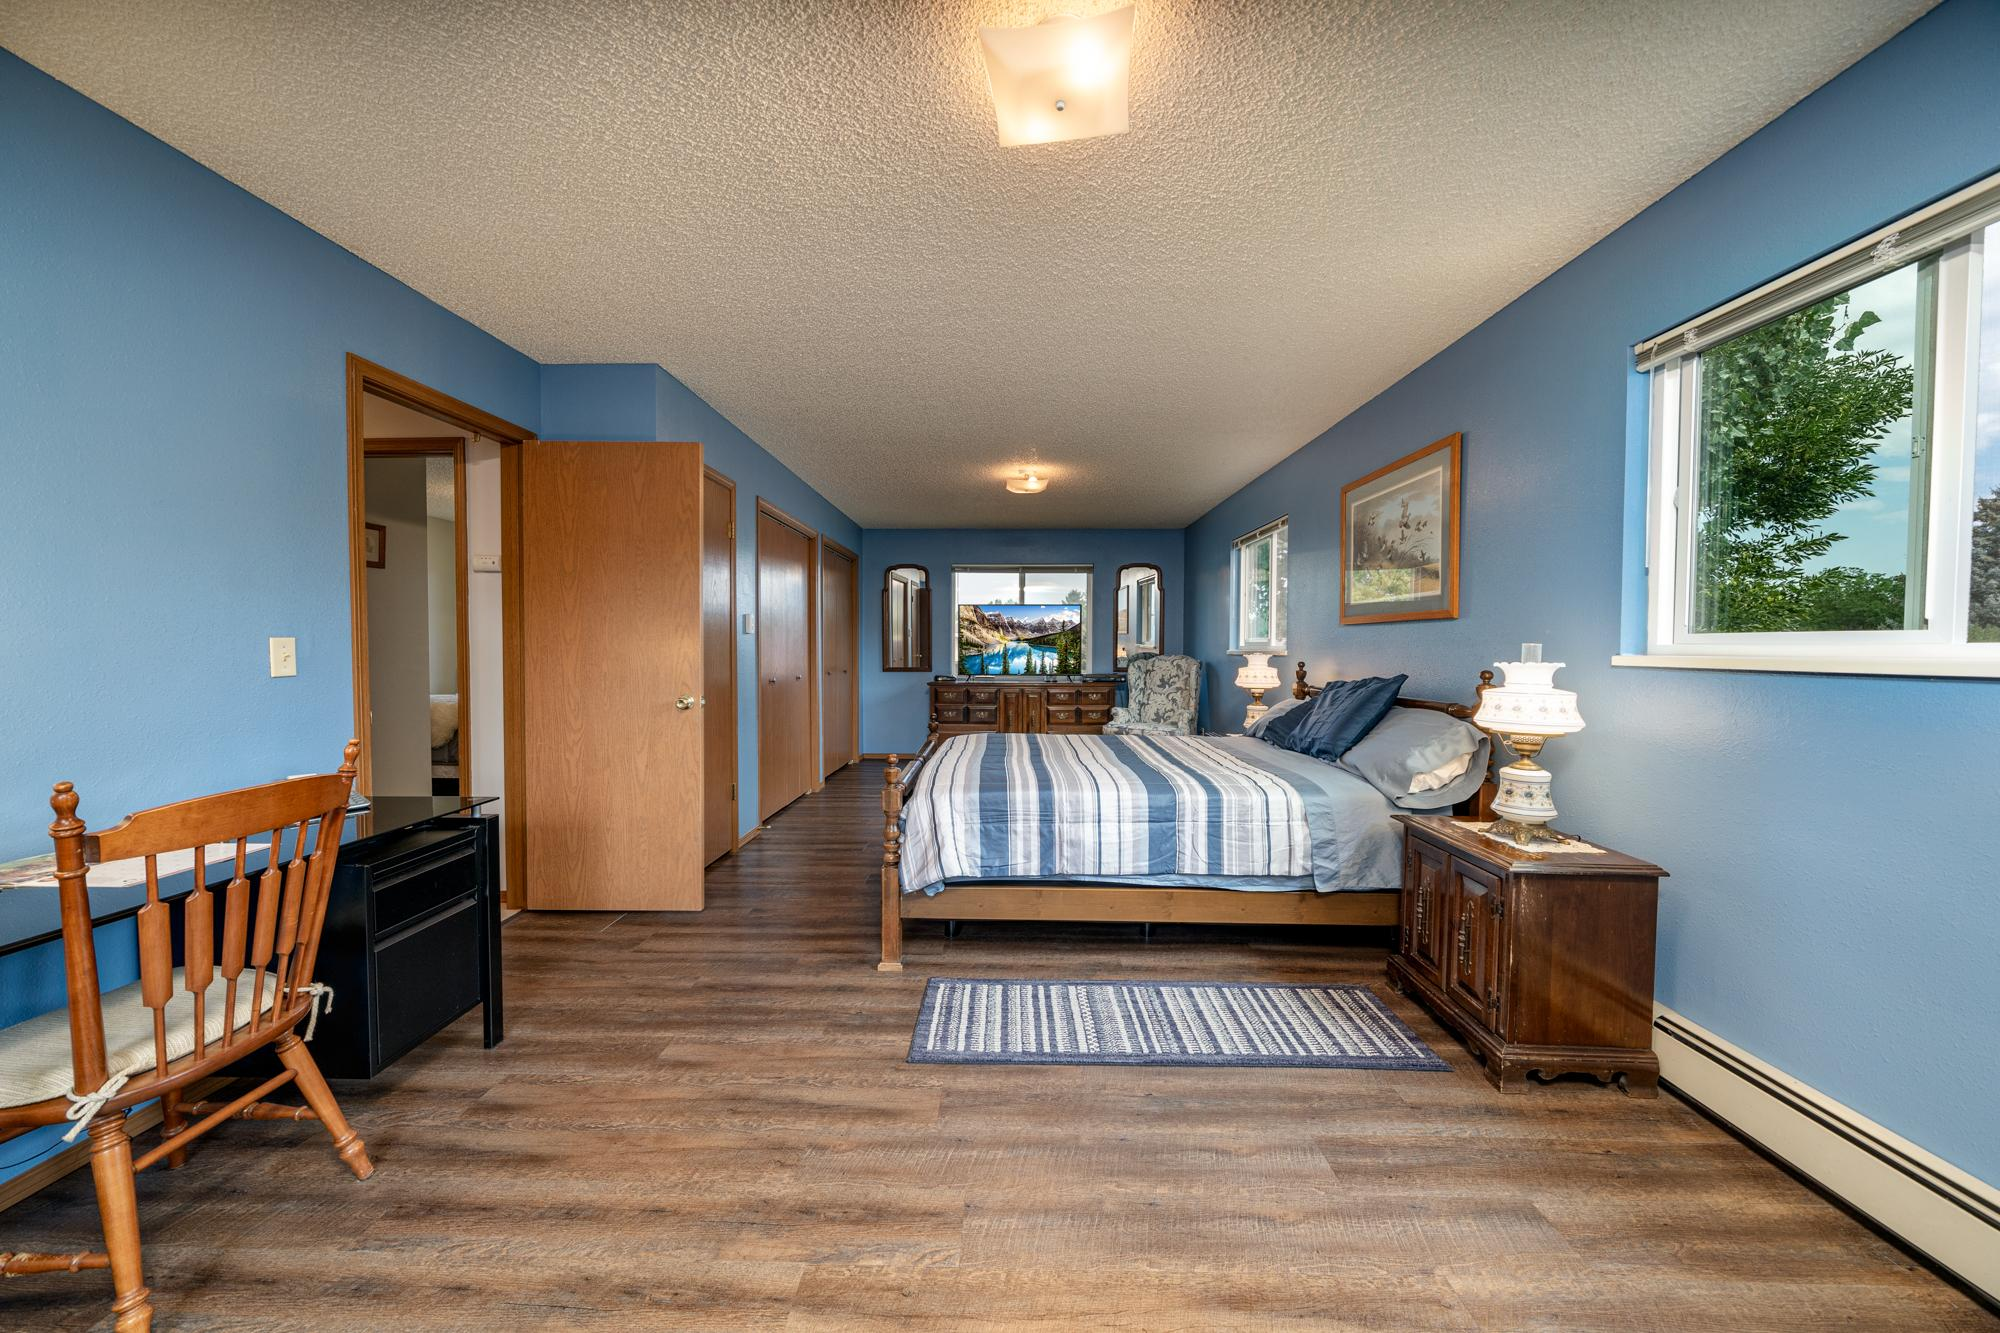 Bedroom with Vinyl Wood Flooring - 1311 Manchester Dr Montrose, CO 81401 - Atha Team Realty Agents